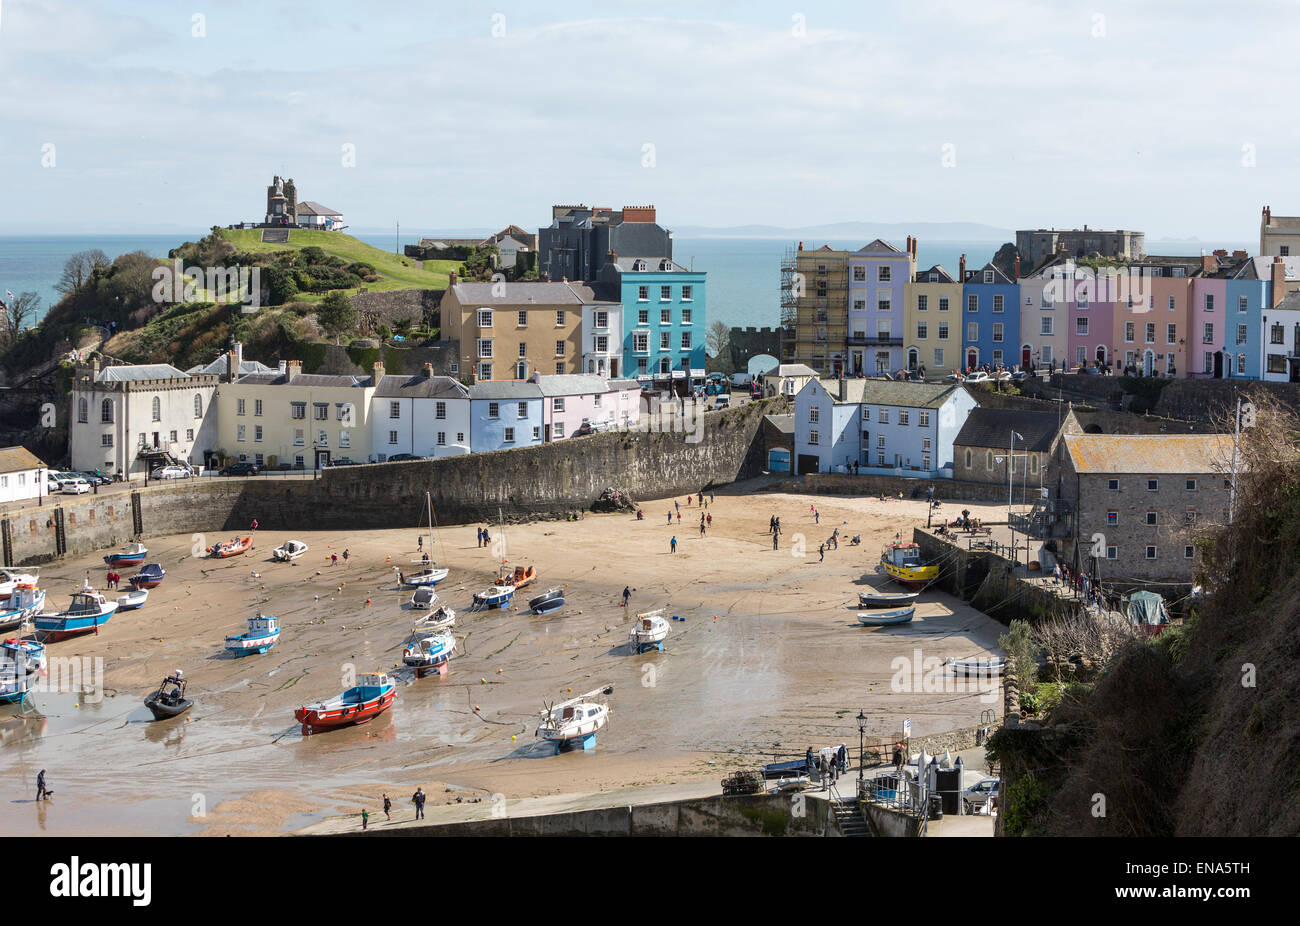 Tenby harbour beach, Pembrokeshire, Wales, United Kingdom - Stock Image